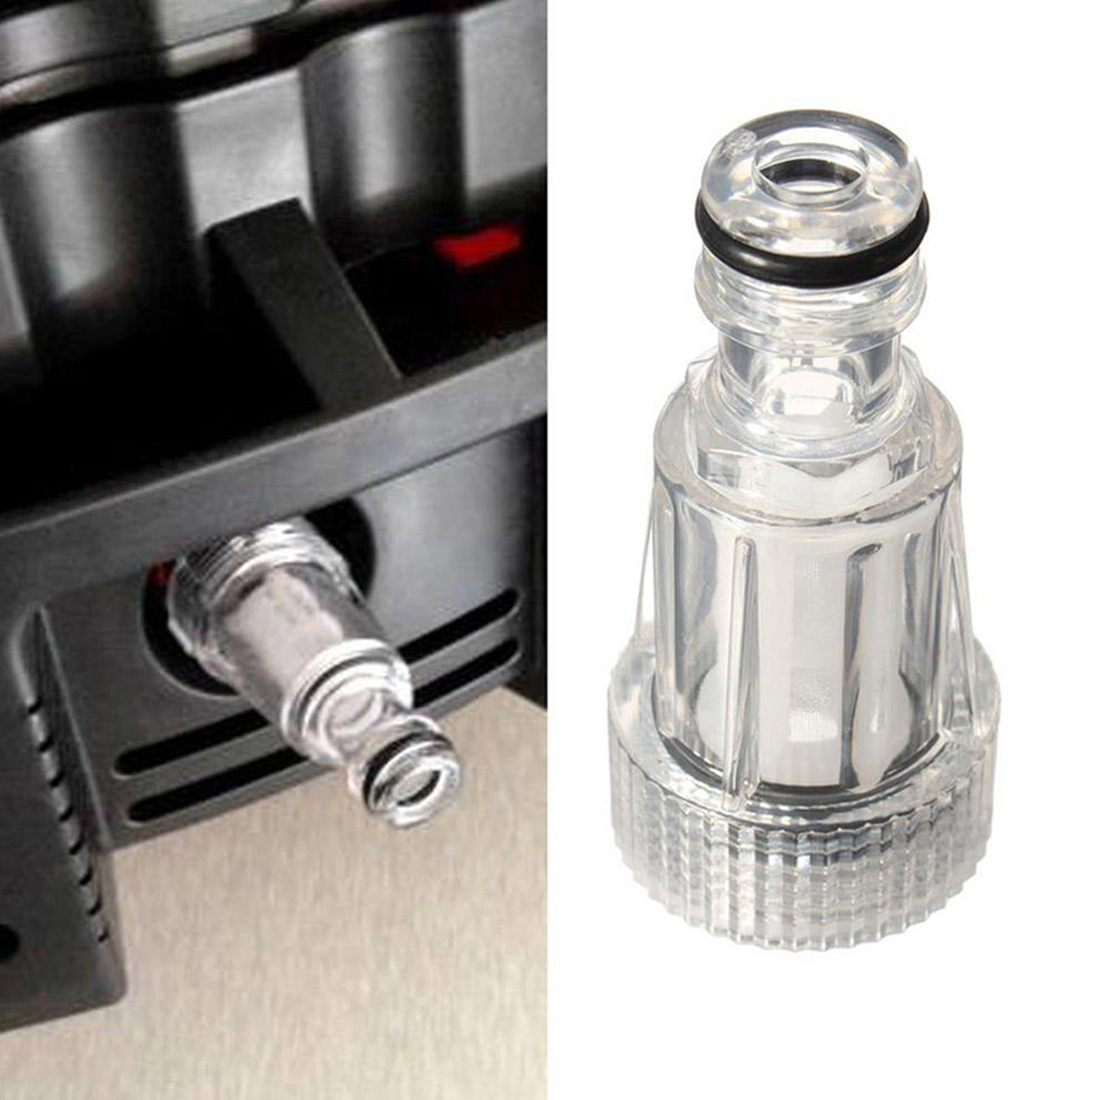 Image 2 - Car Washing Machine Water Filter High pressure Connection Fitting For Karcher K2 K7 Series Pressure Washers